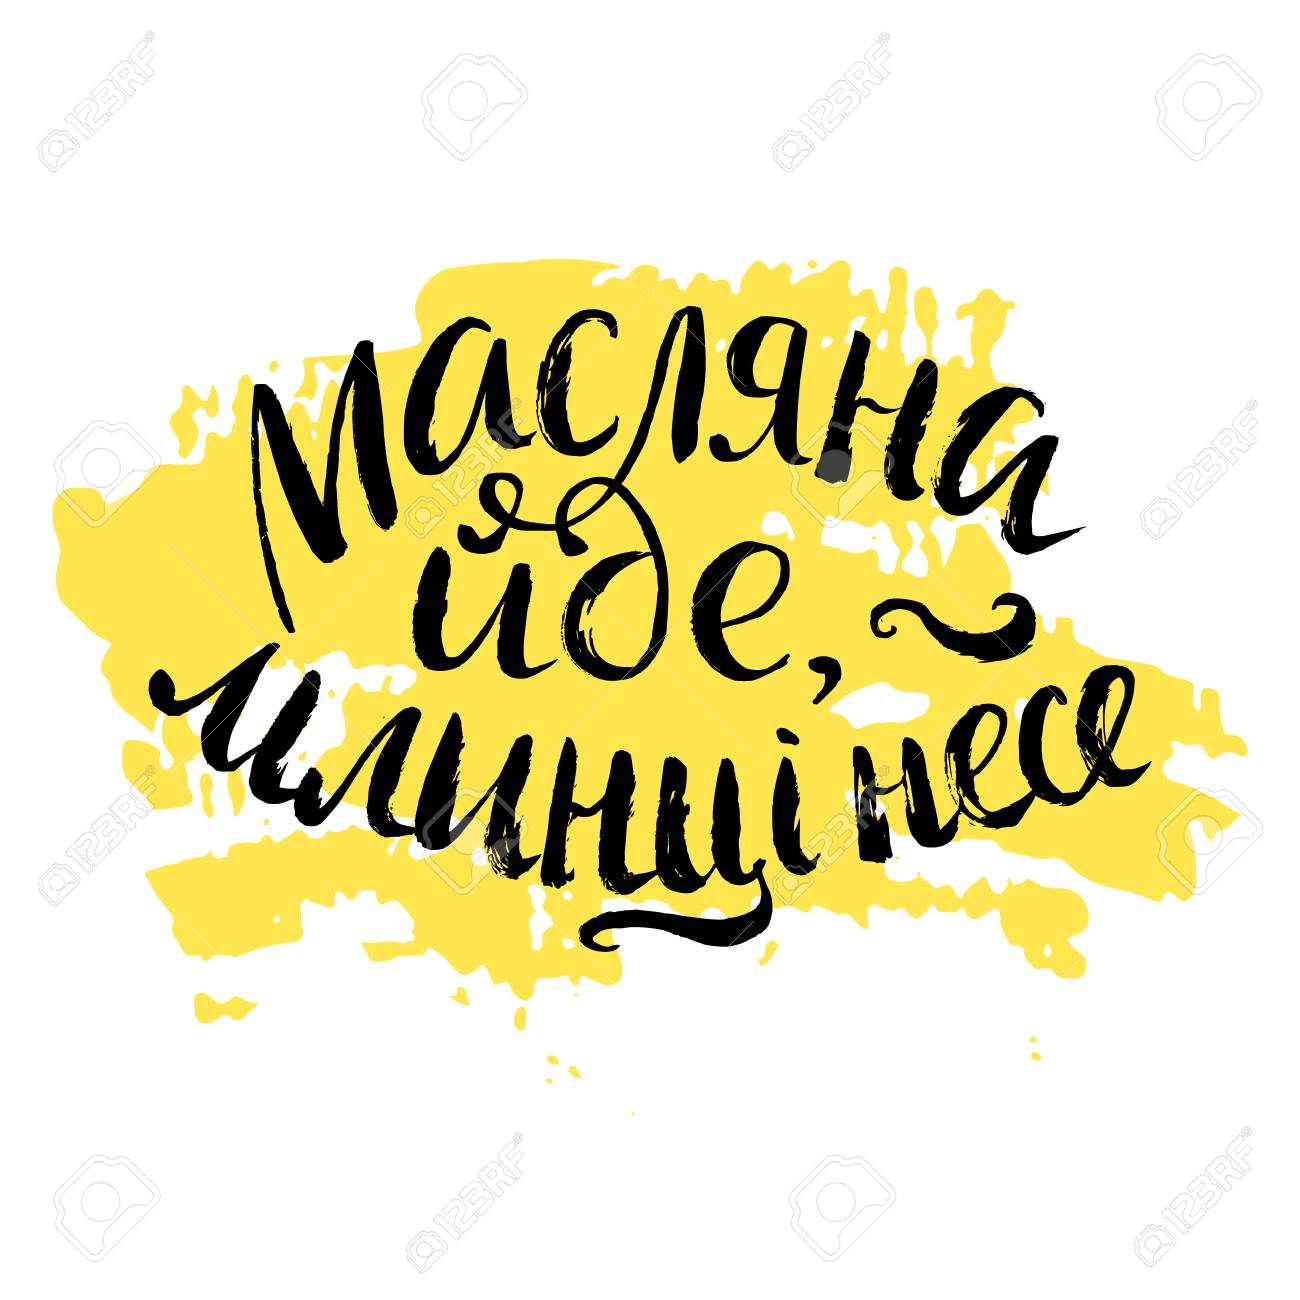 Maslenitsa: a selection of quotes